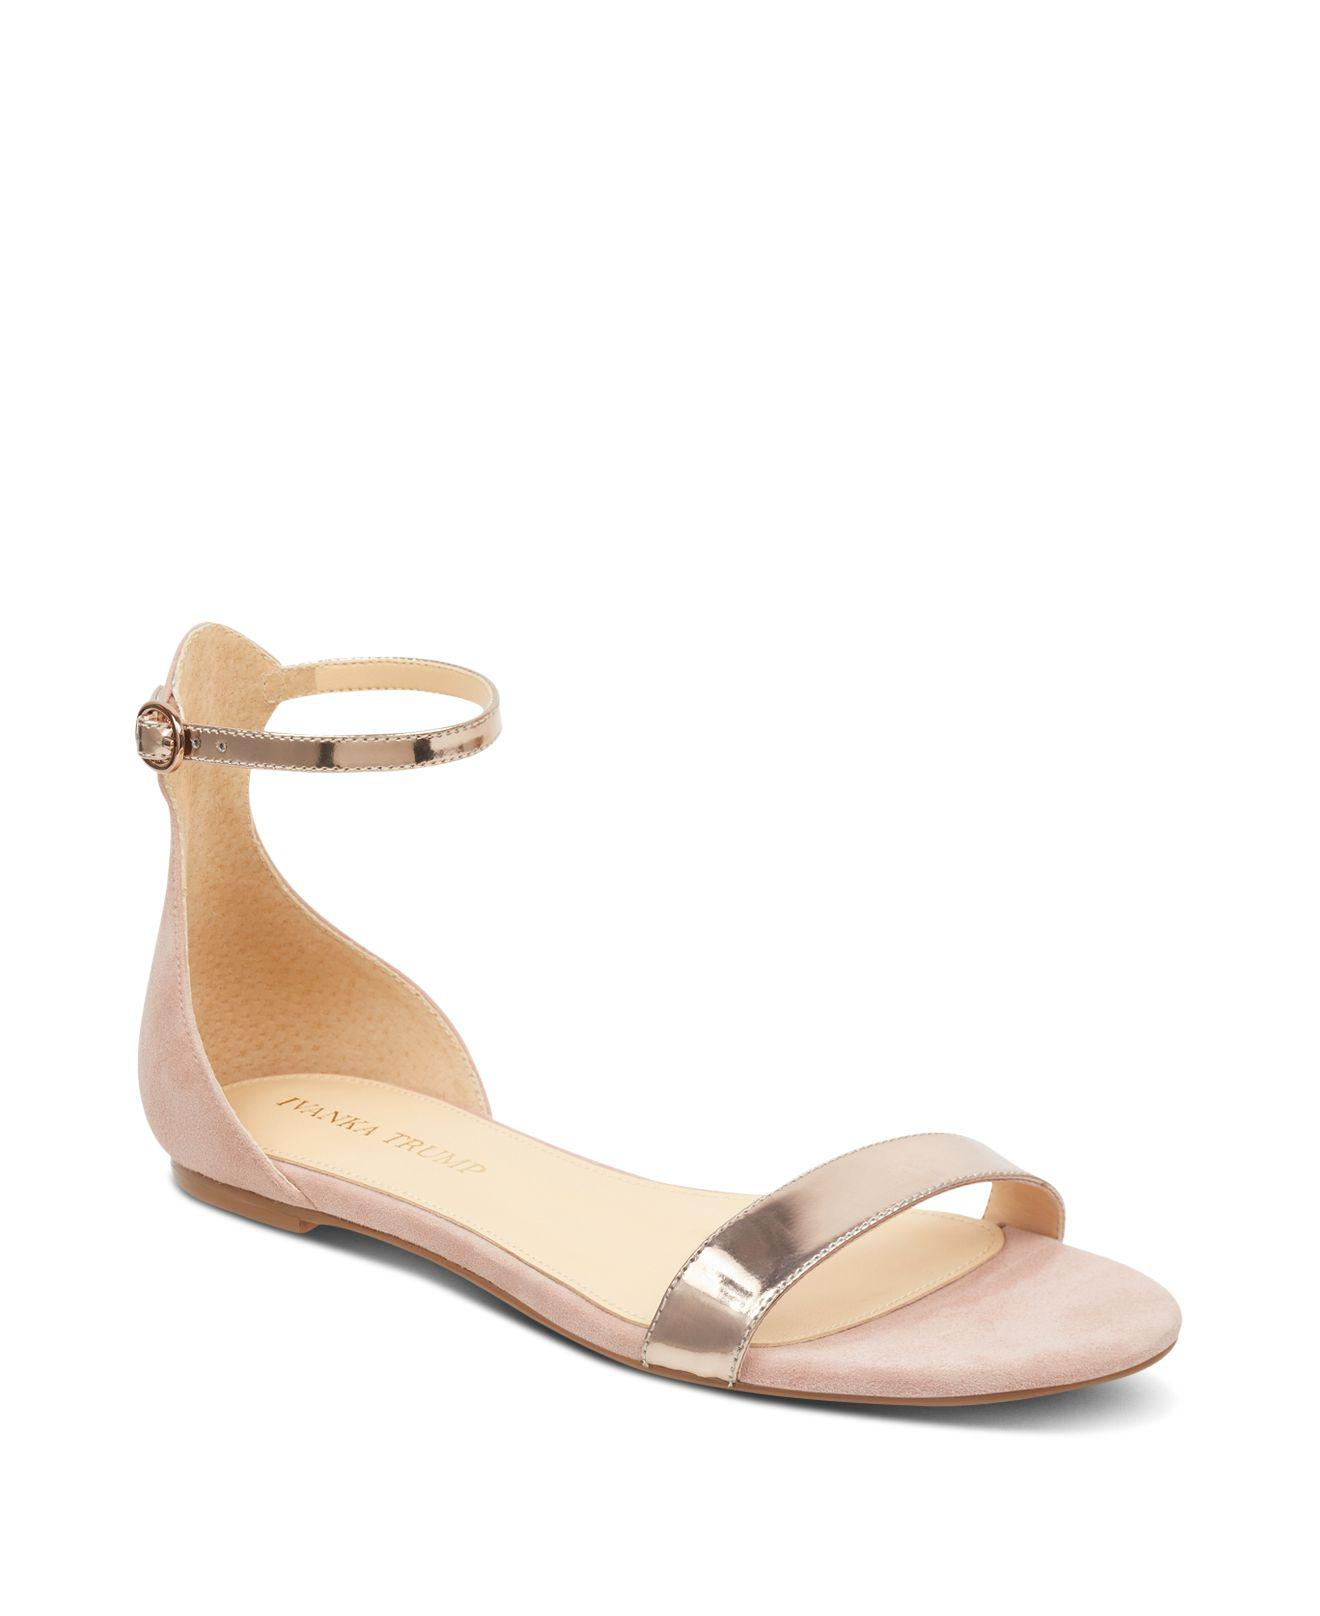 Ivanka Trump Women's Camryn Suede & Patent Leather Ankle Strap Sandals UDr0Sgevb